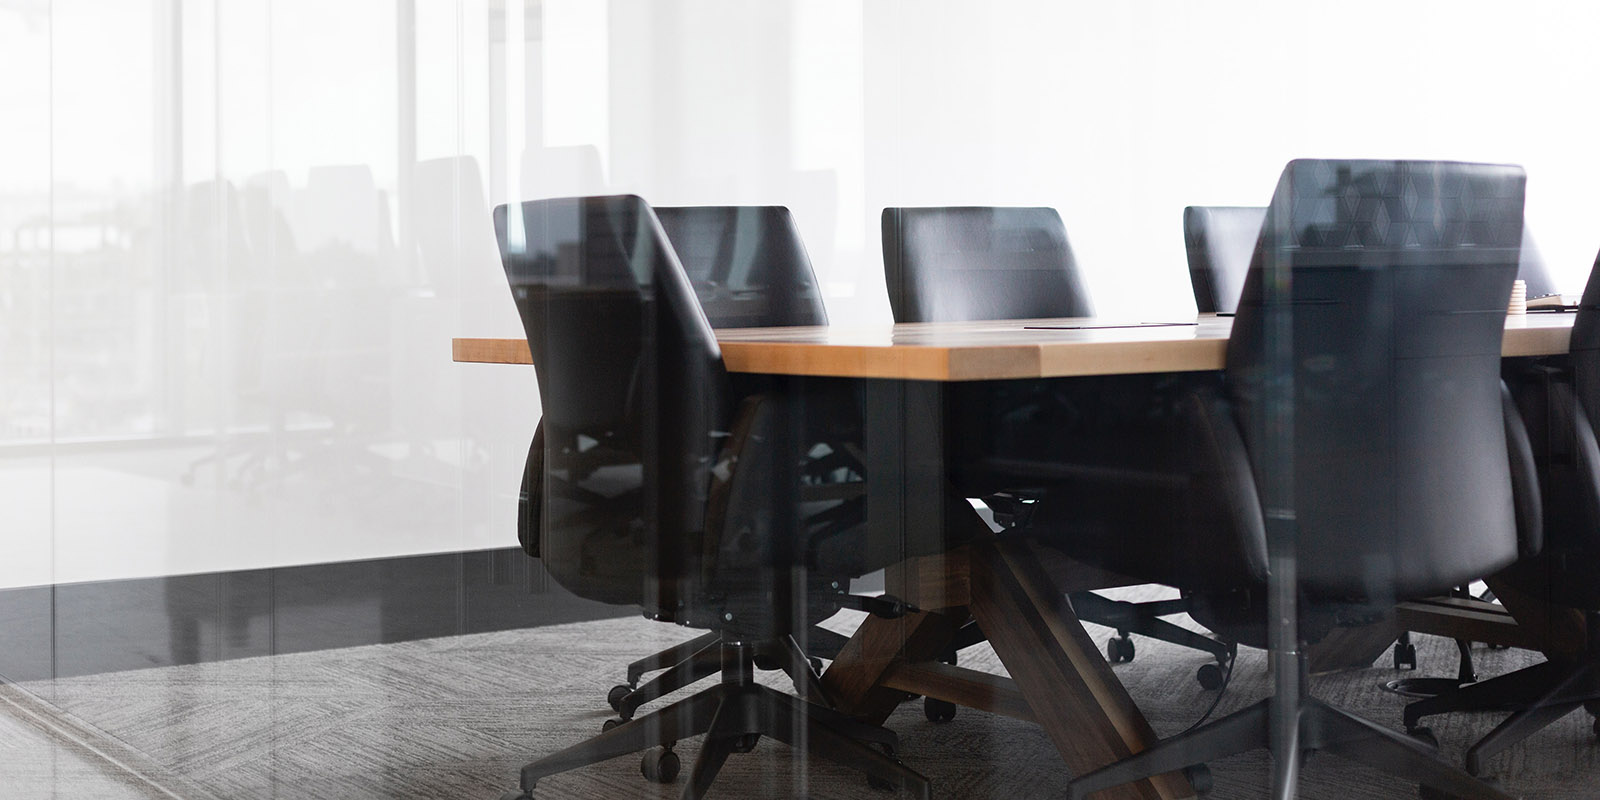 Black chairs around a boardroom table